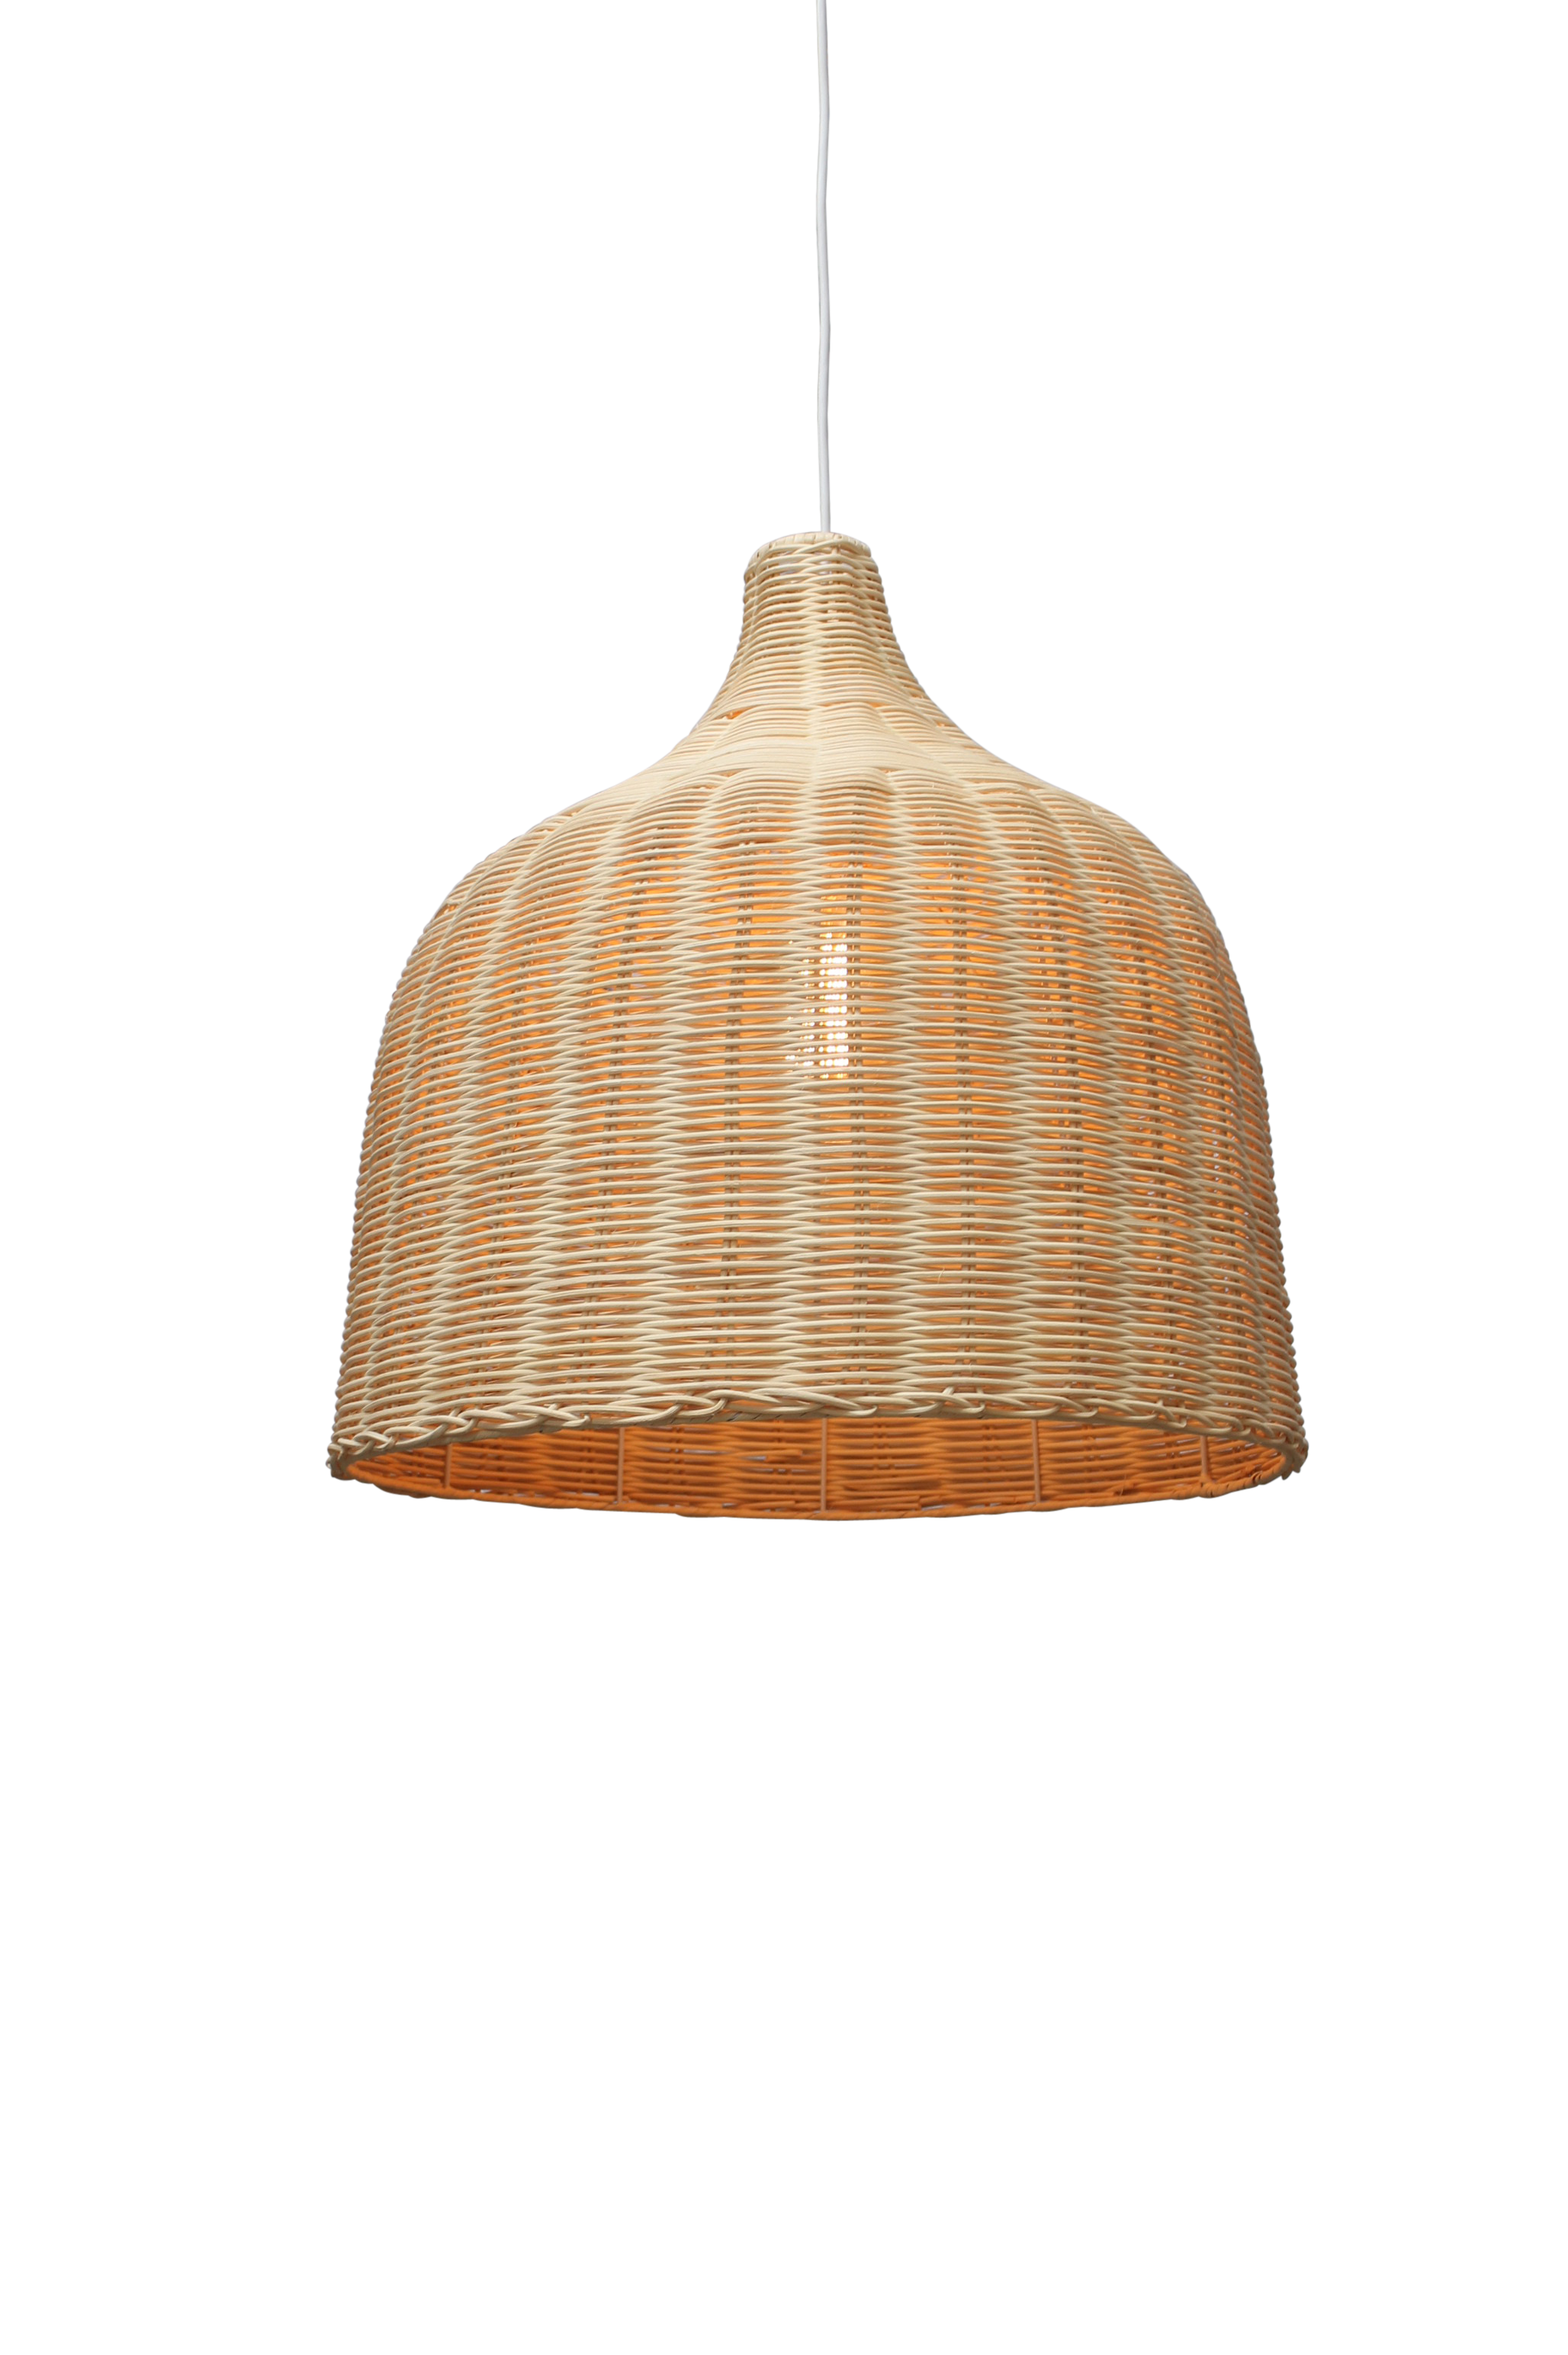 Wicker Ceiling Light - Rattan by Fat Shack Vintage, a Pendant Lighting for sale on Style Sourcebook